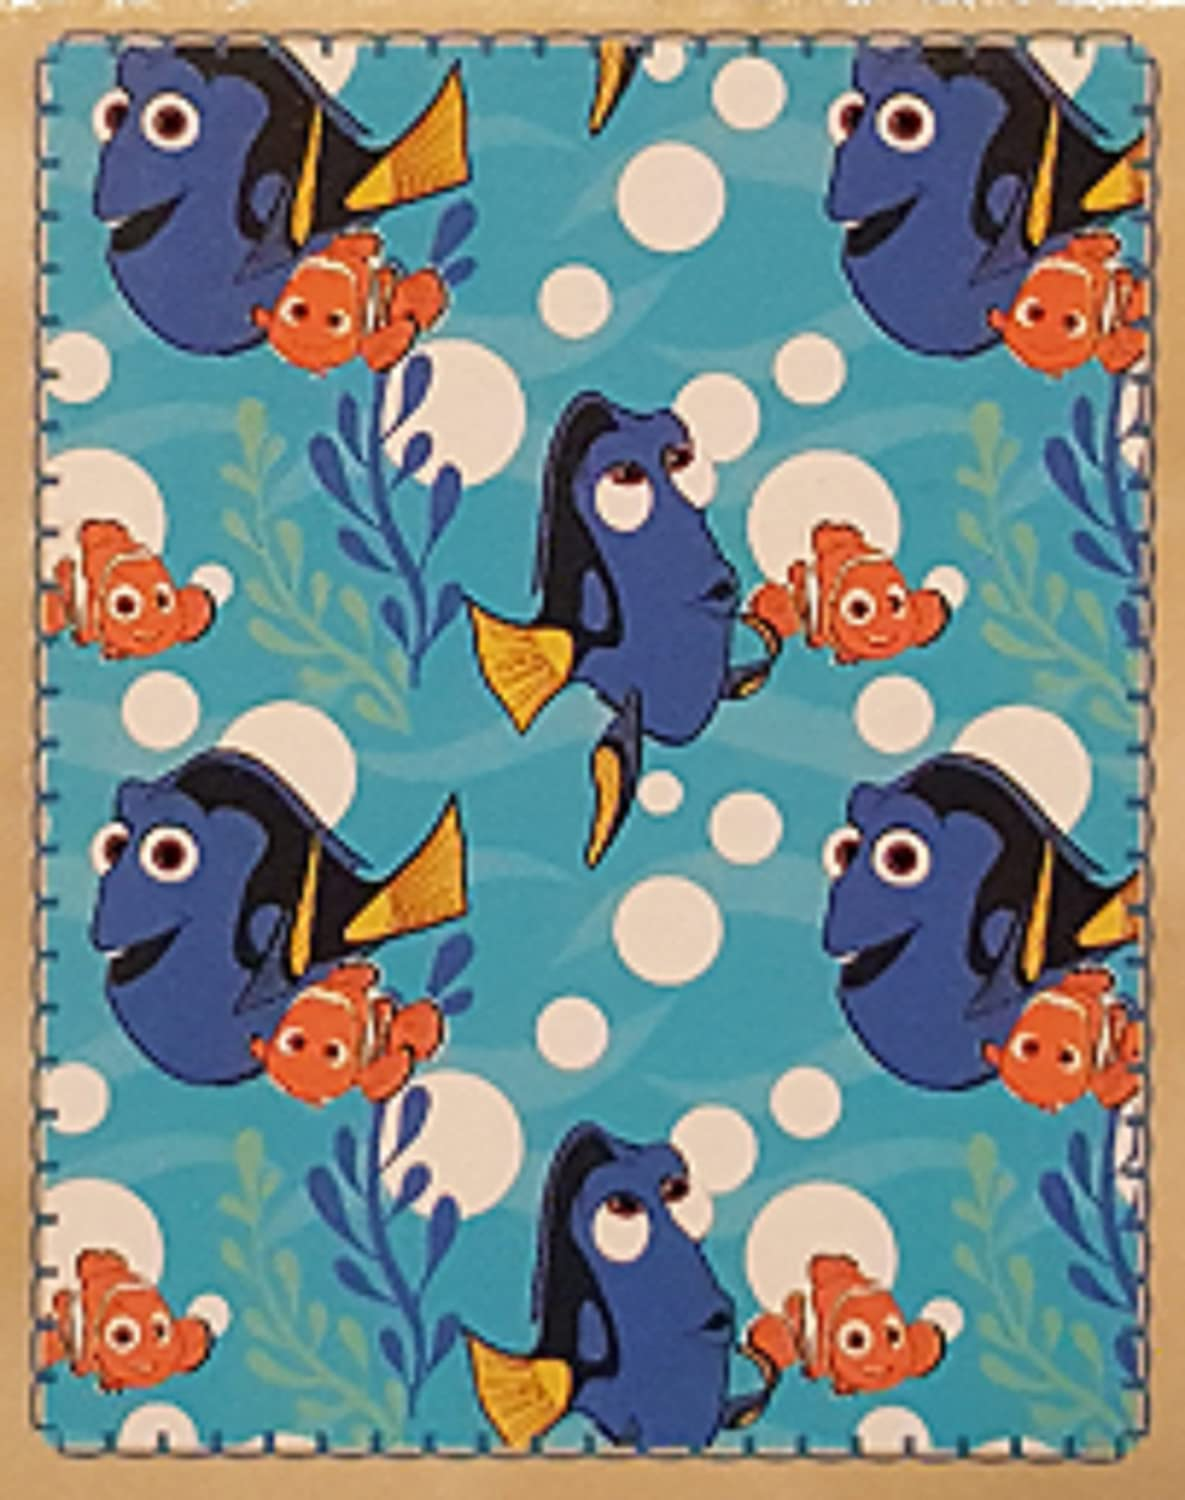 Disney Pixar Finding Dory Super Soft Throw Blanket Featuring Dory and Nemo B01M05VRIG